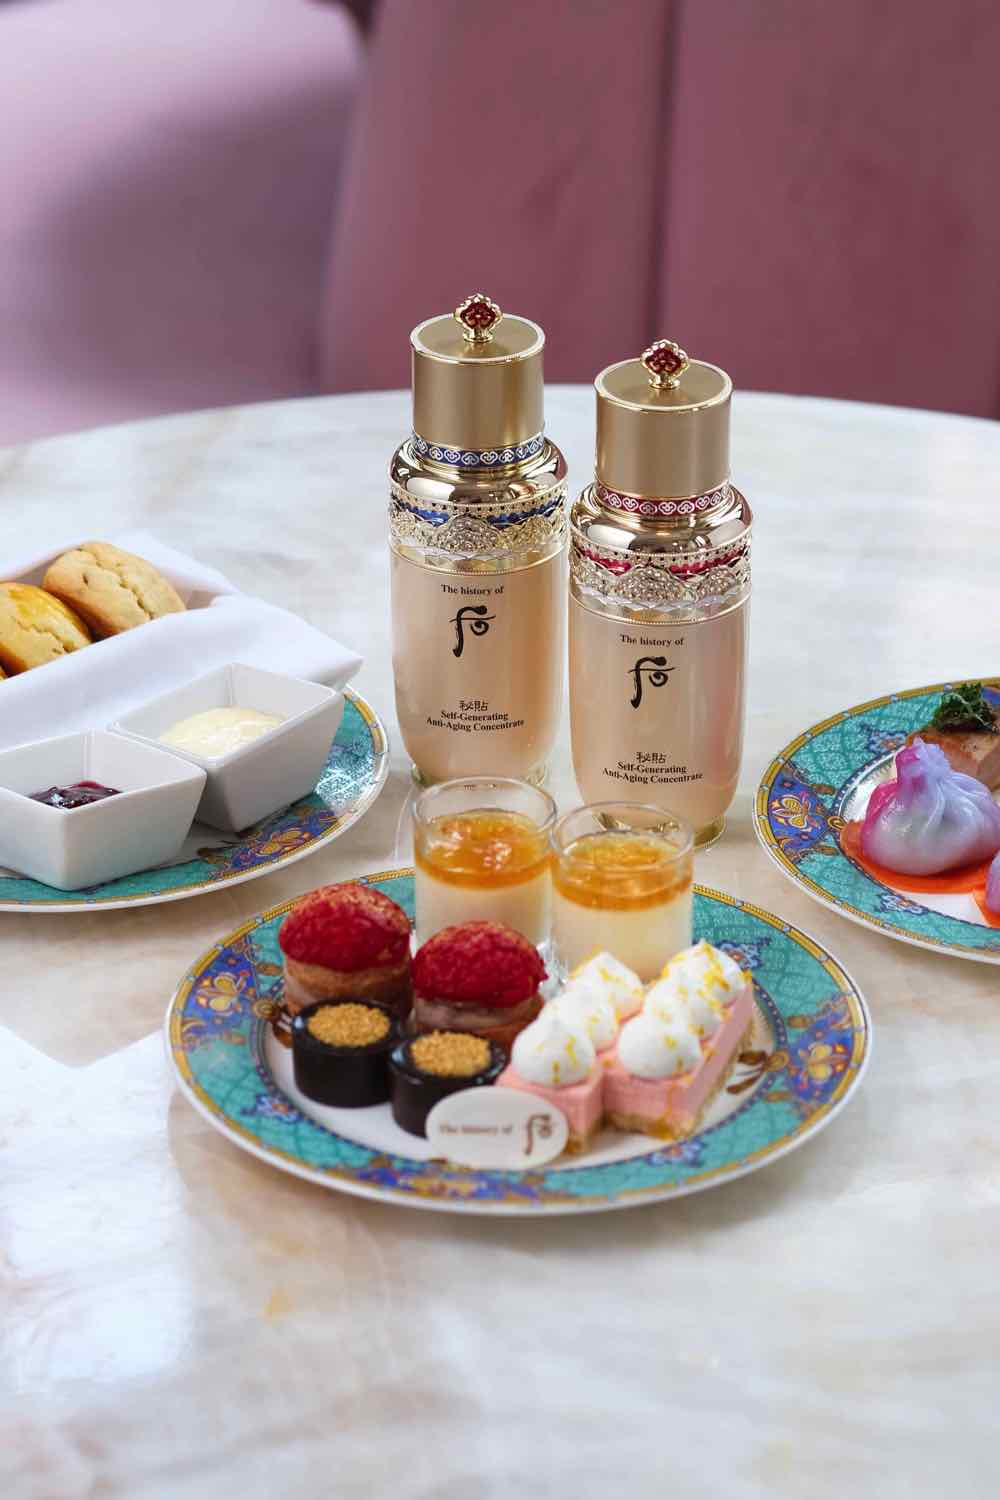 Madame Fù 聯乘 The history of Whoo 推出「The Royals」下午茶